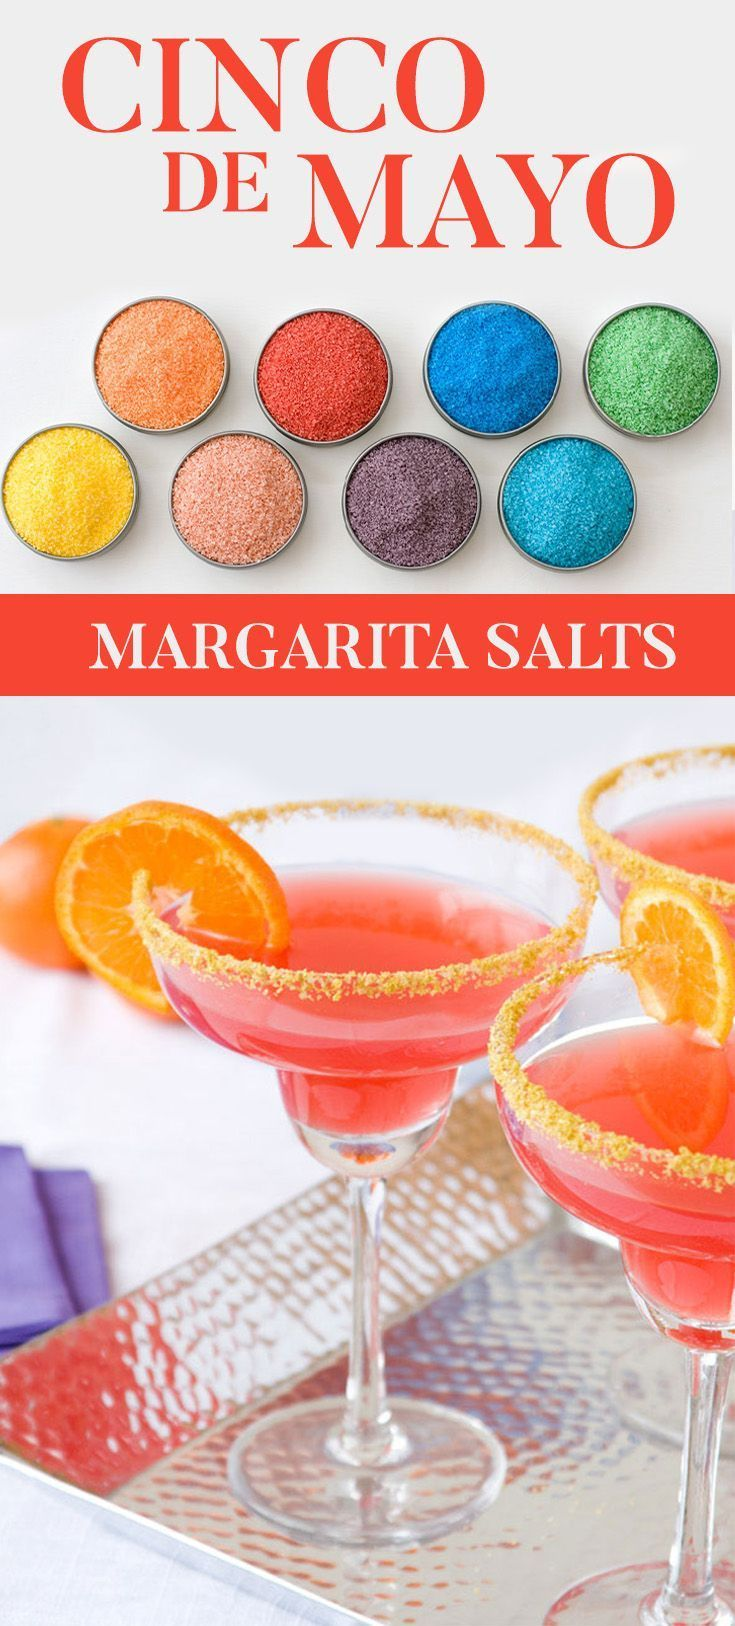 Celebrate Cinco De Mayo with a our colored Margarita Salts. Life is too short to serve boring margaritas: Add a bit of colorful fun with our margarita salts. #CincoDeMayo